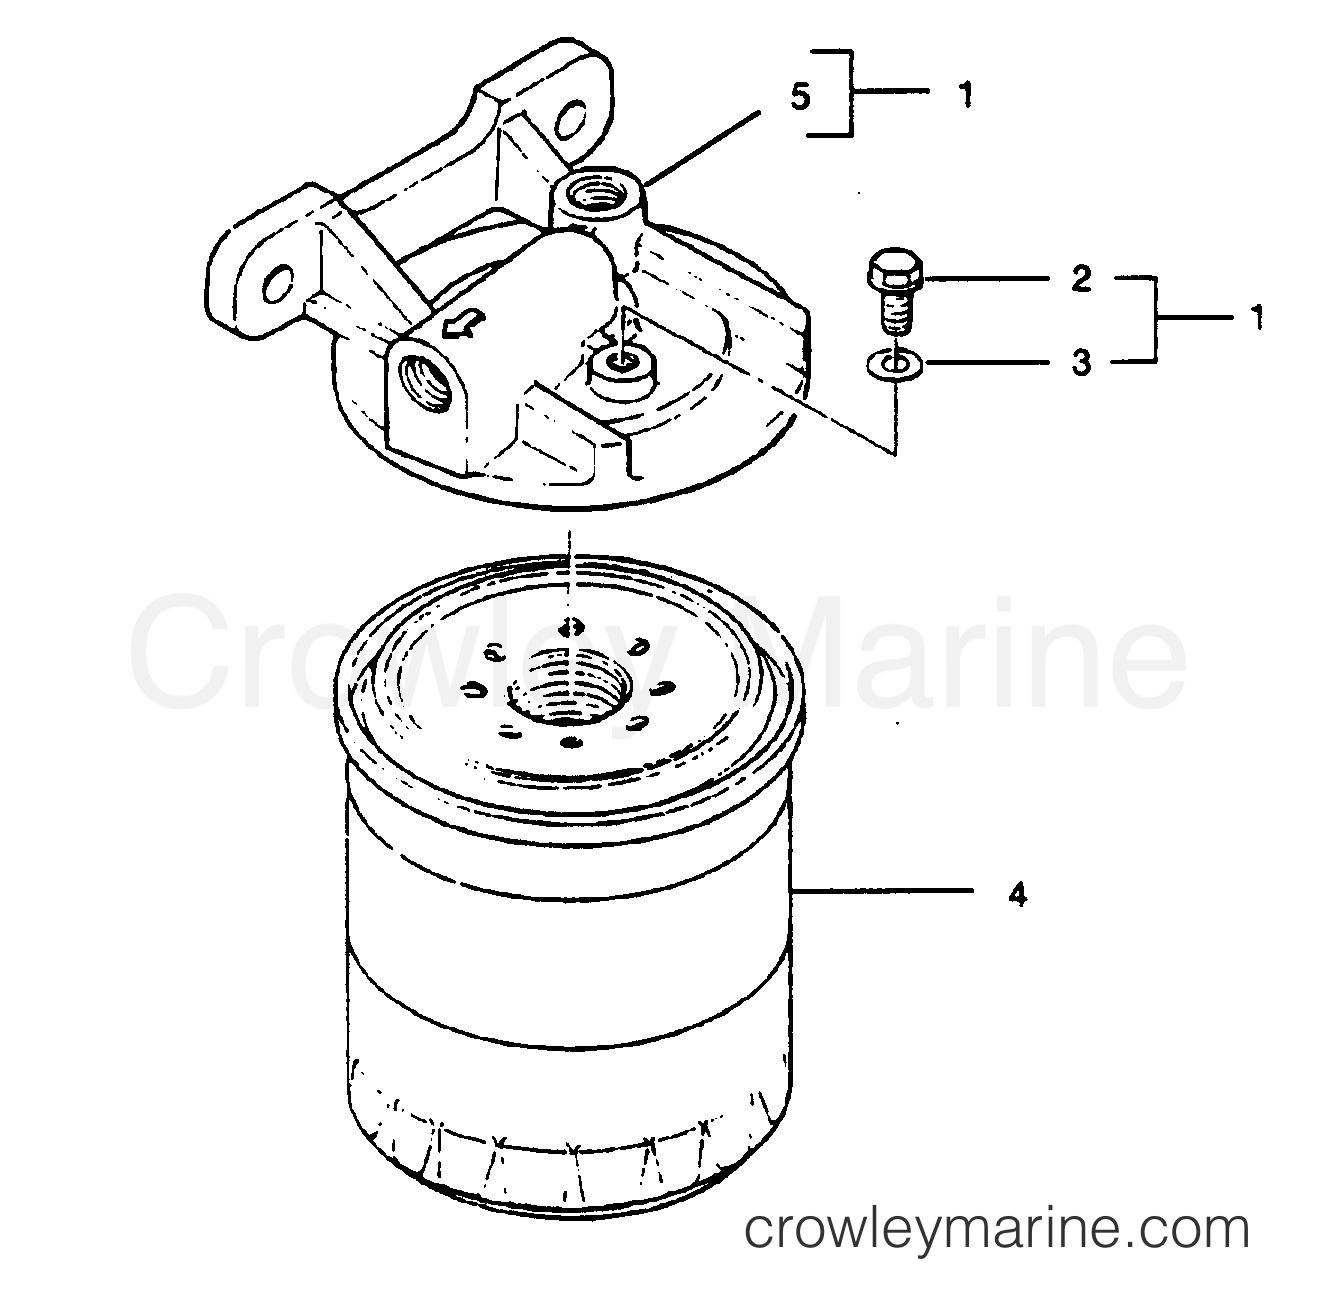 FUEL FILTER BASE EMBLY (P/N 233002010) - All Years U.S. Marine ...